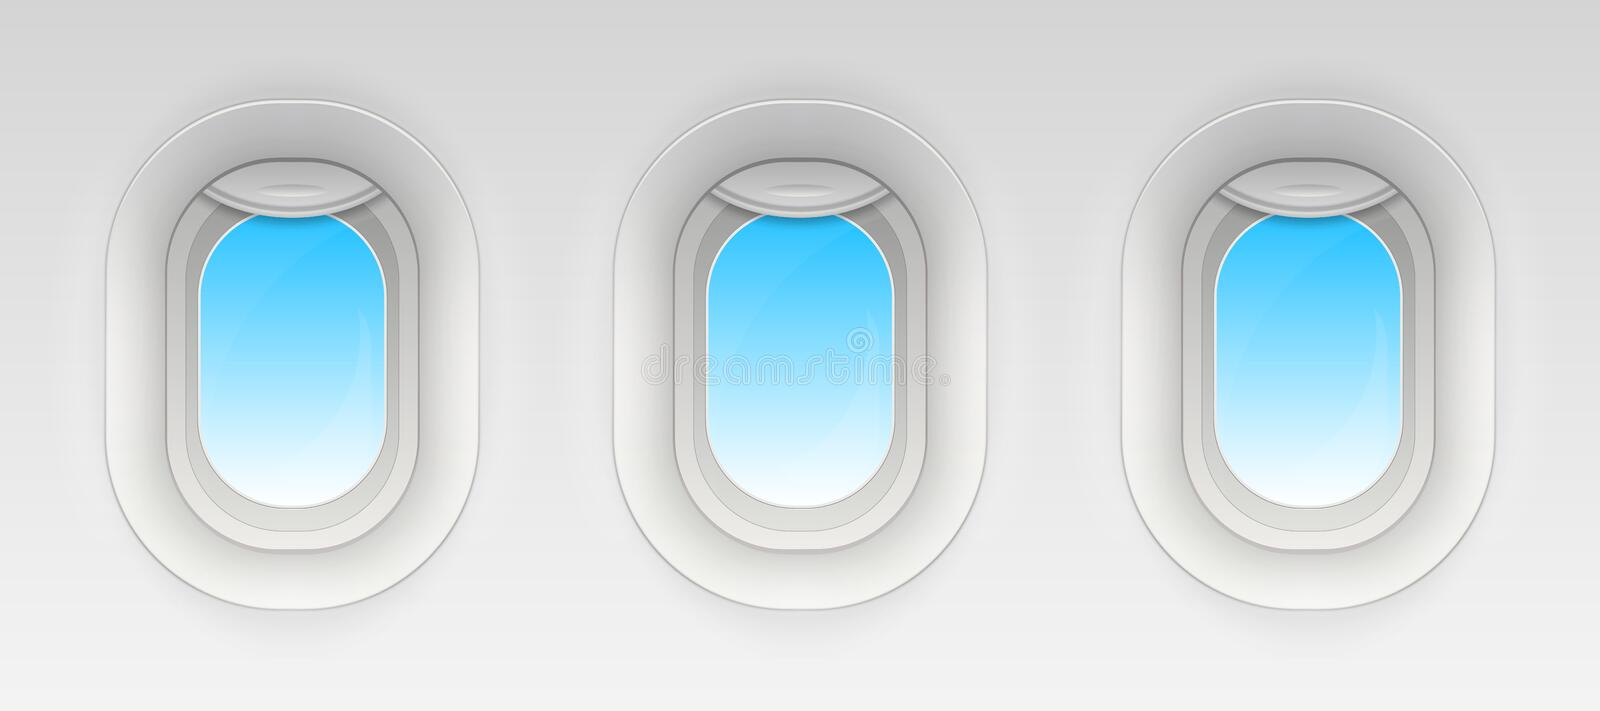 Aircraft Closed Window Stock Illustrations 108 Aircraft Closed Window Stock Illustrations Vectors Clipart Dreamstime